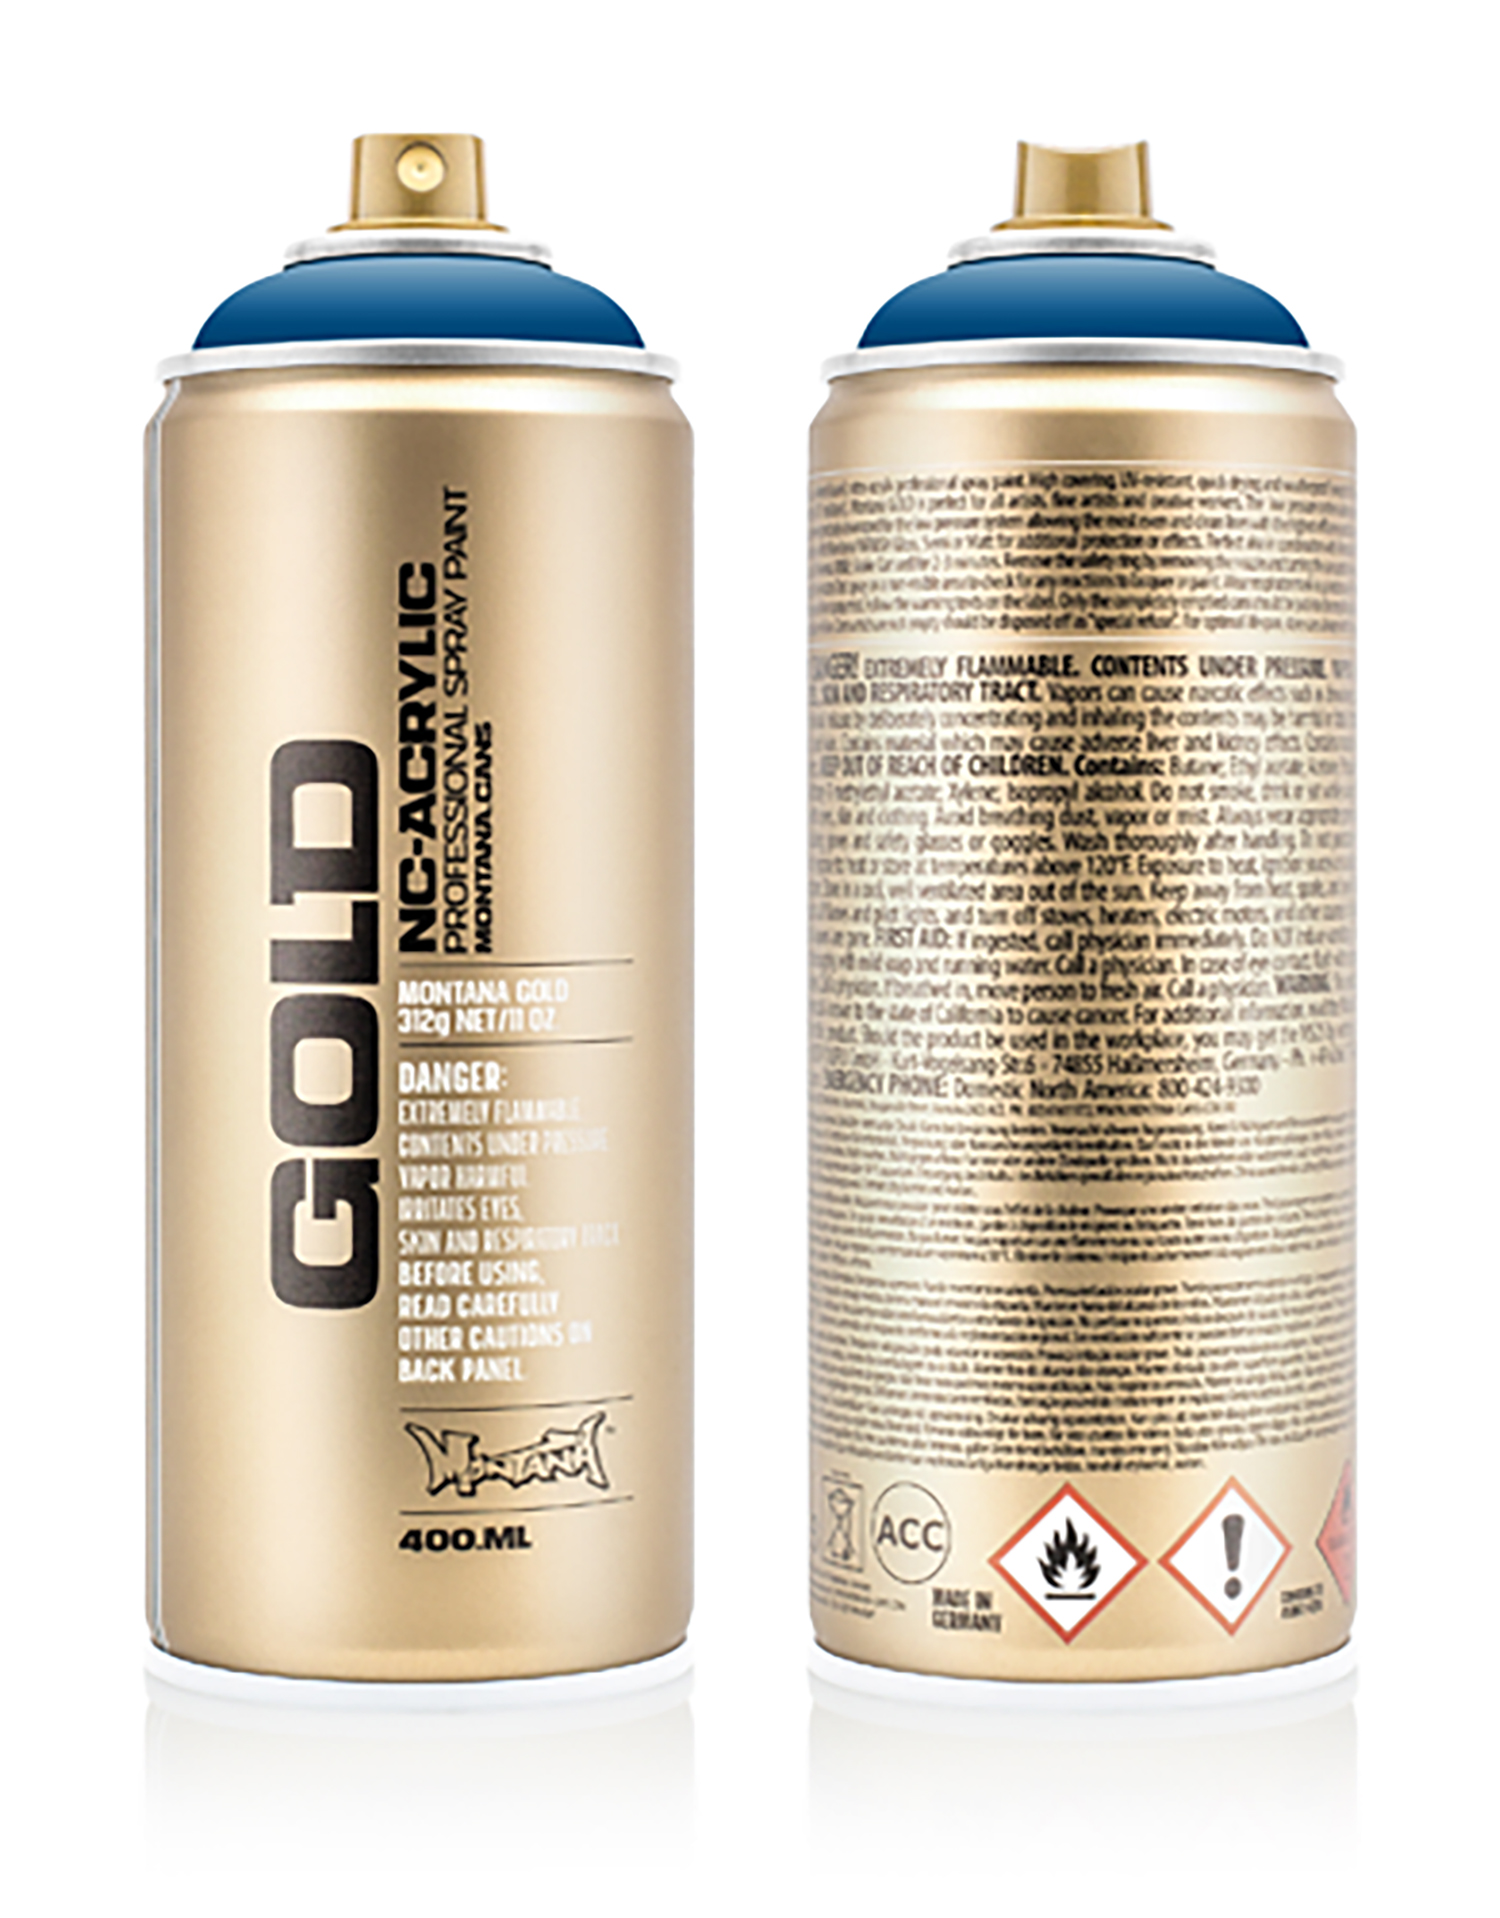 MONTANA-GOLD-SPRAY-400ML-G-5075